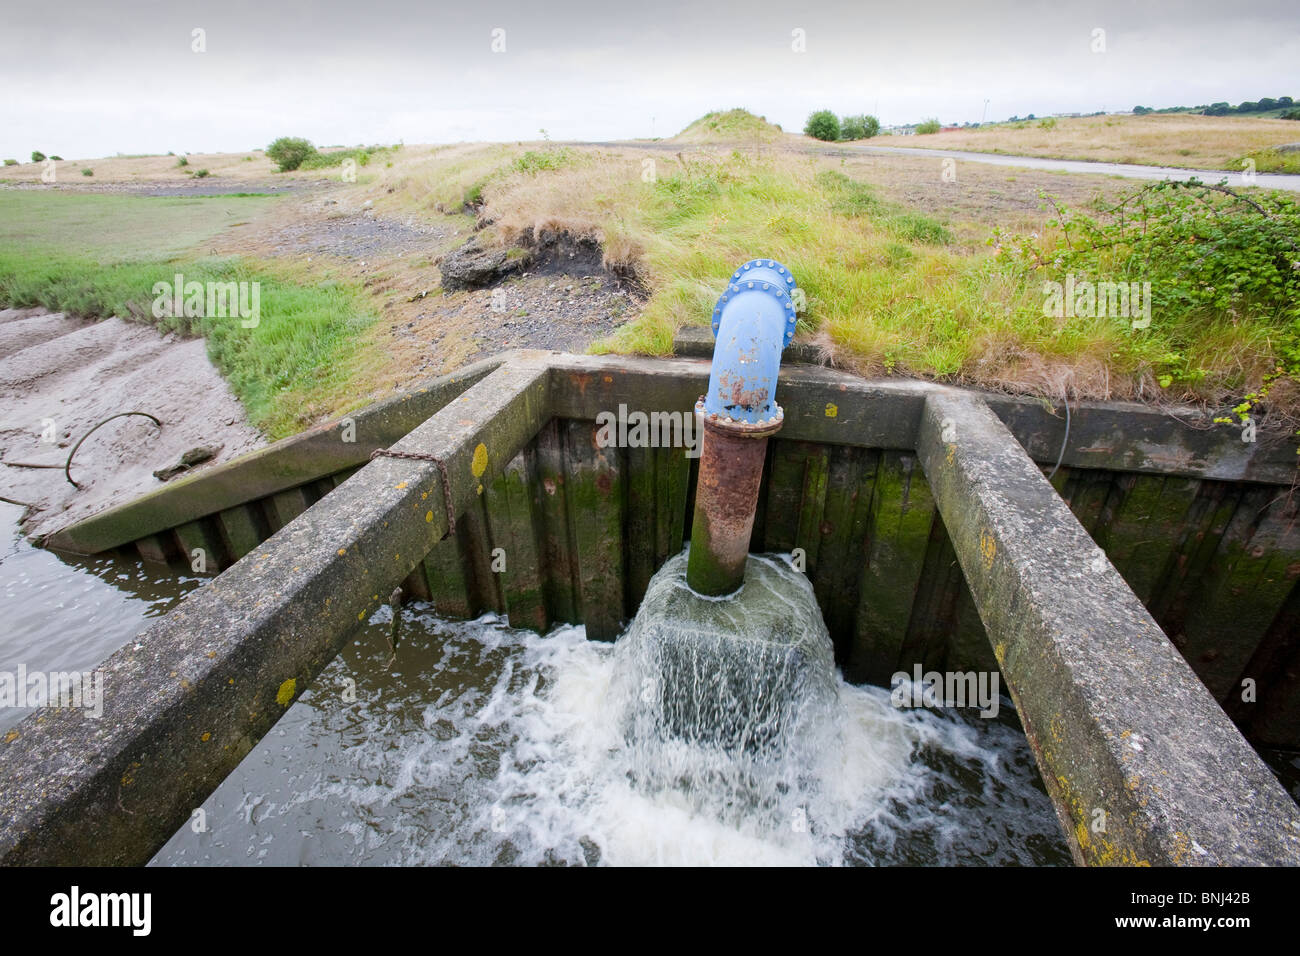 Pumping water off reclaimed salt marsh land, low lying and vulnerable to coastal flooding in North Wales - Stock Image